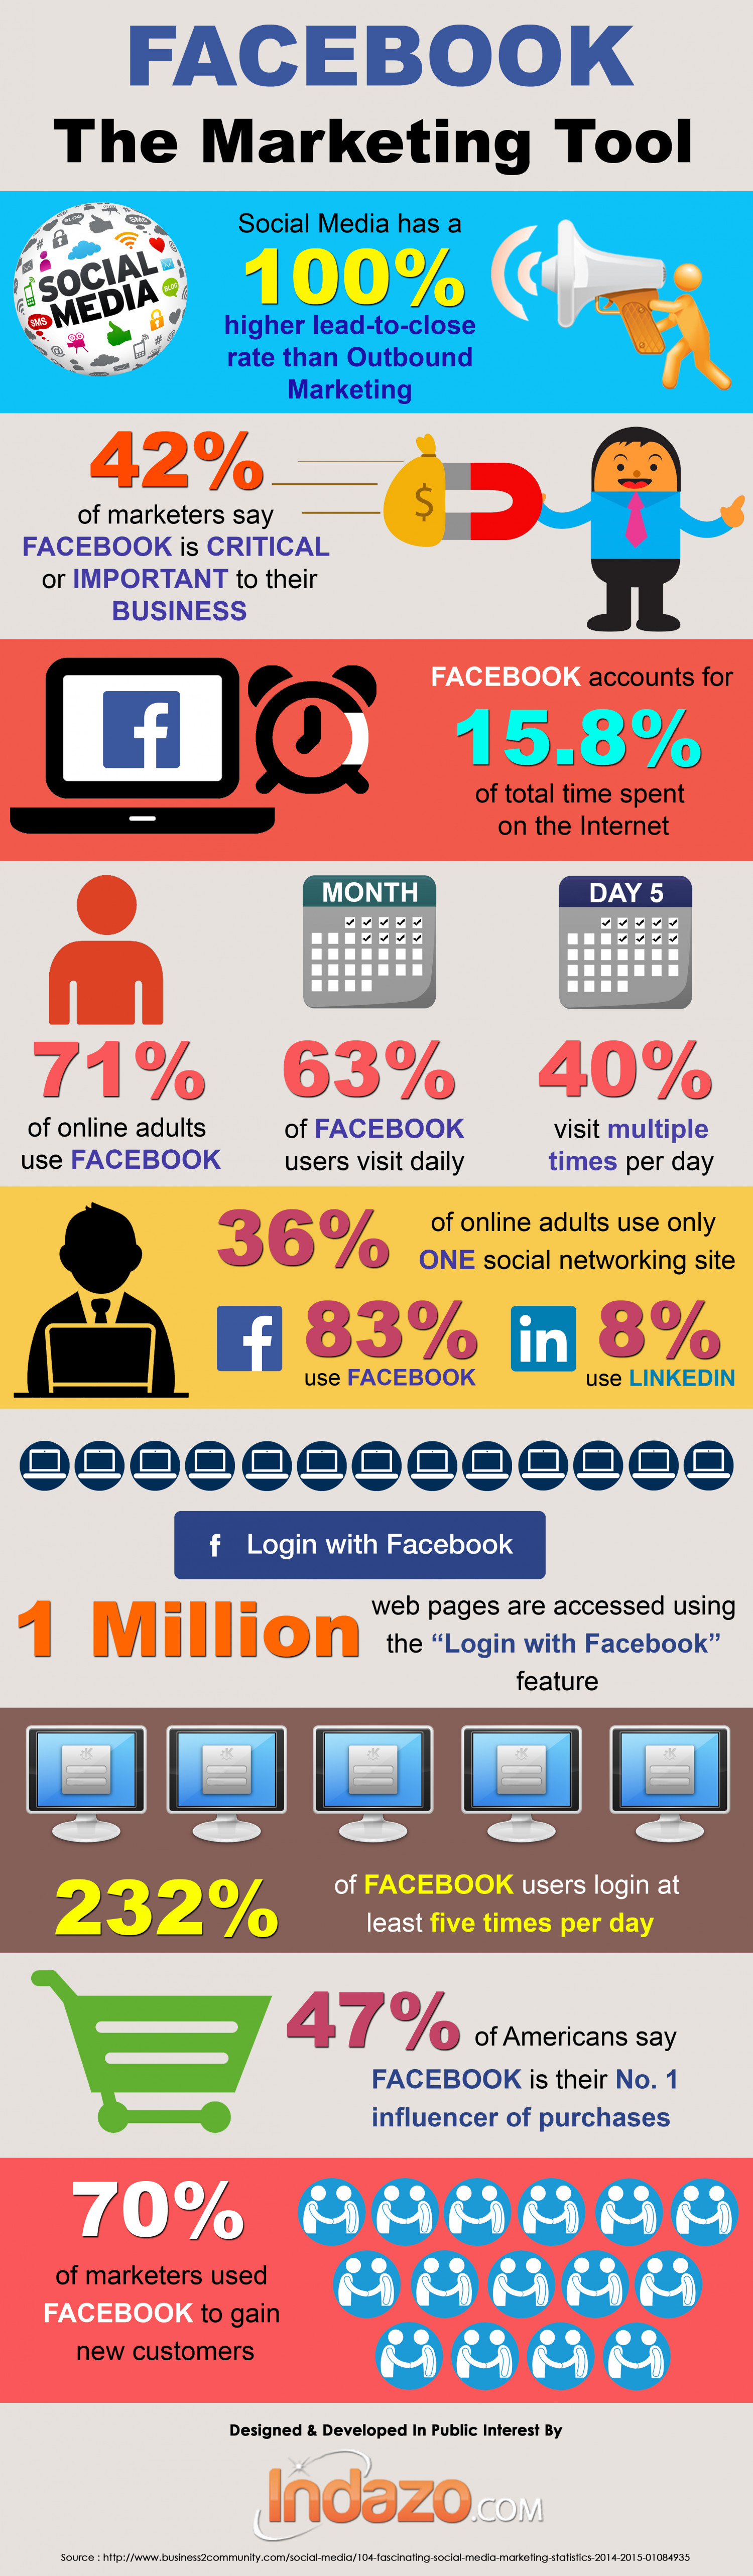 Facebook The Marketing Tool Infographic